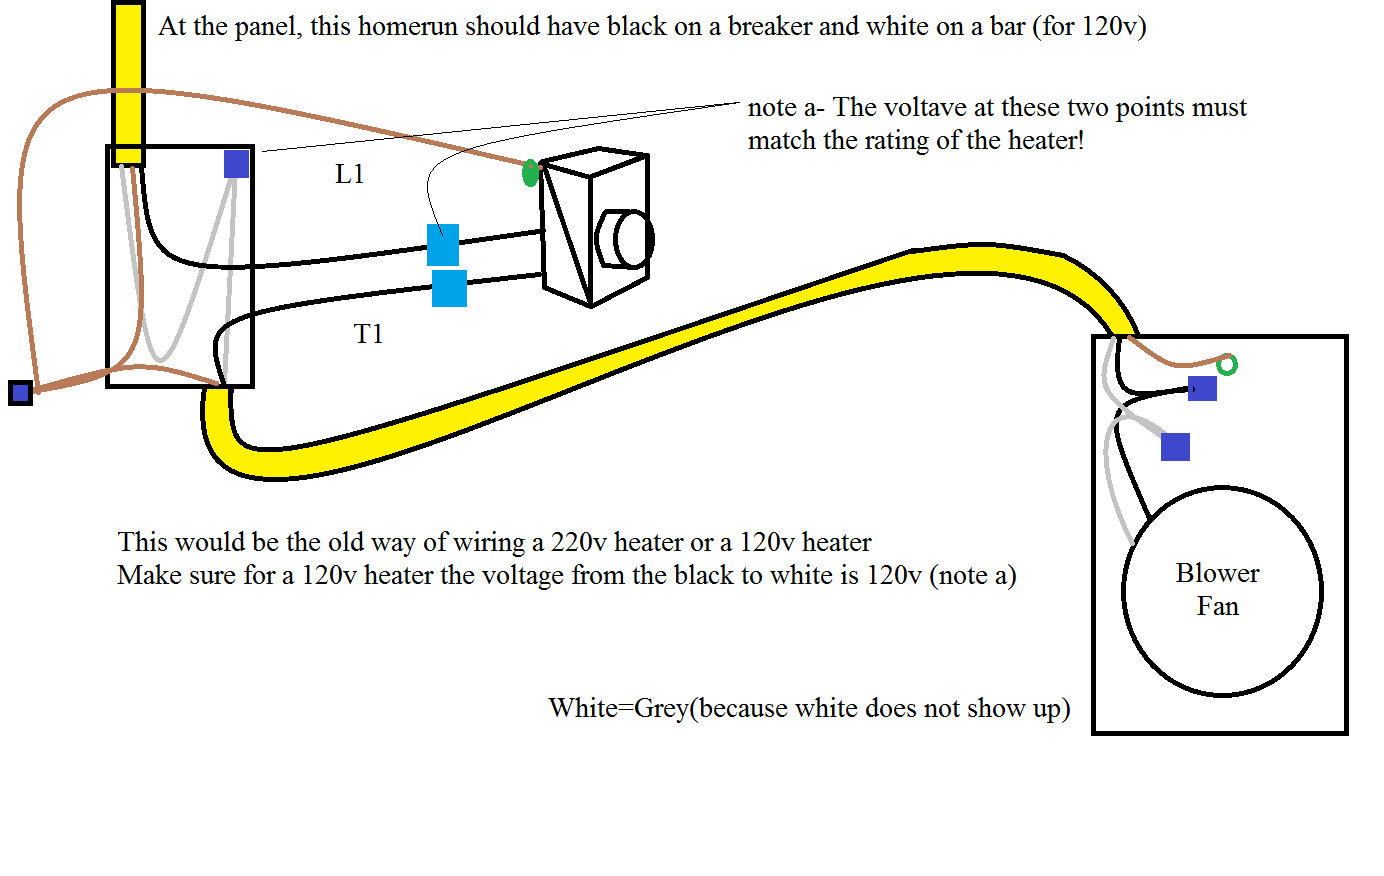 a house wired prior to 2008 would have the white wire wire nutted through even if it was 220v heater system where a house wired after 2008 the white wire  [ 1384 x 876 Pixel ]